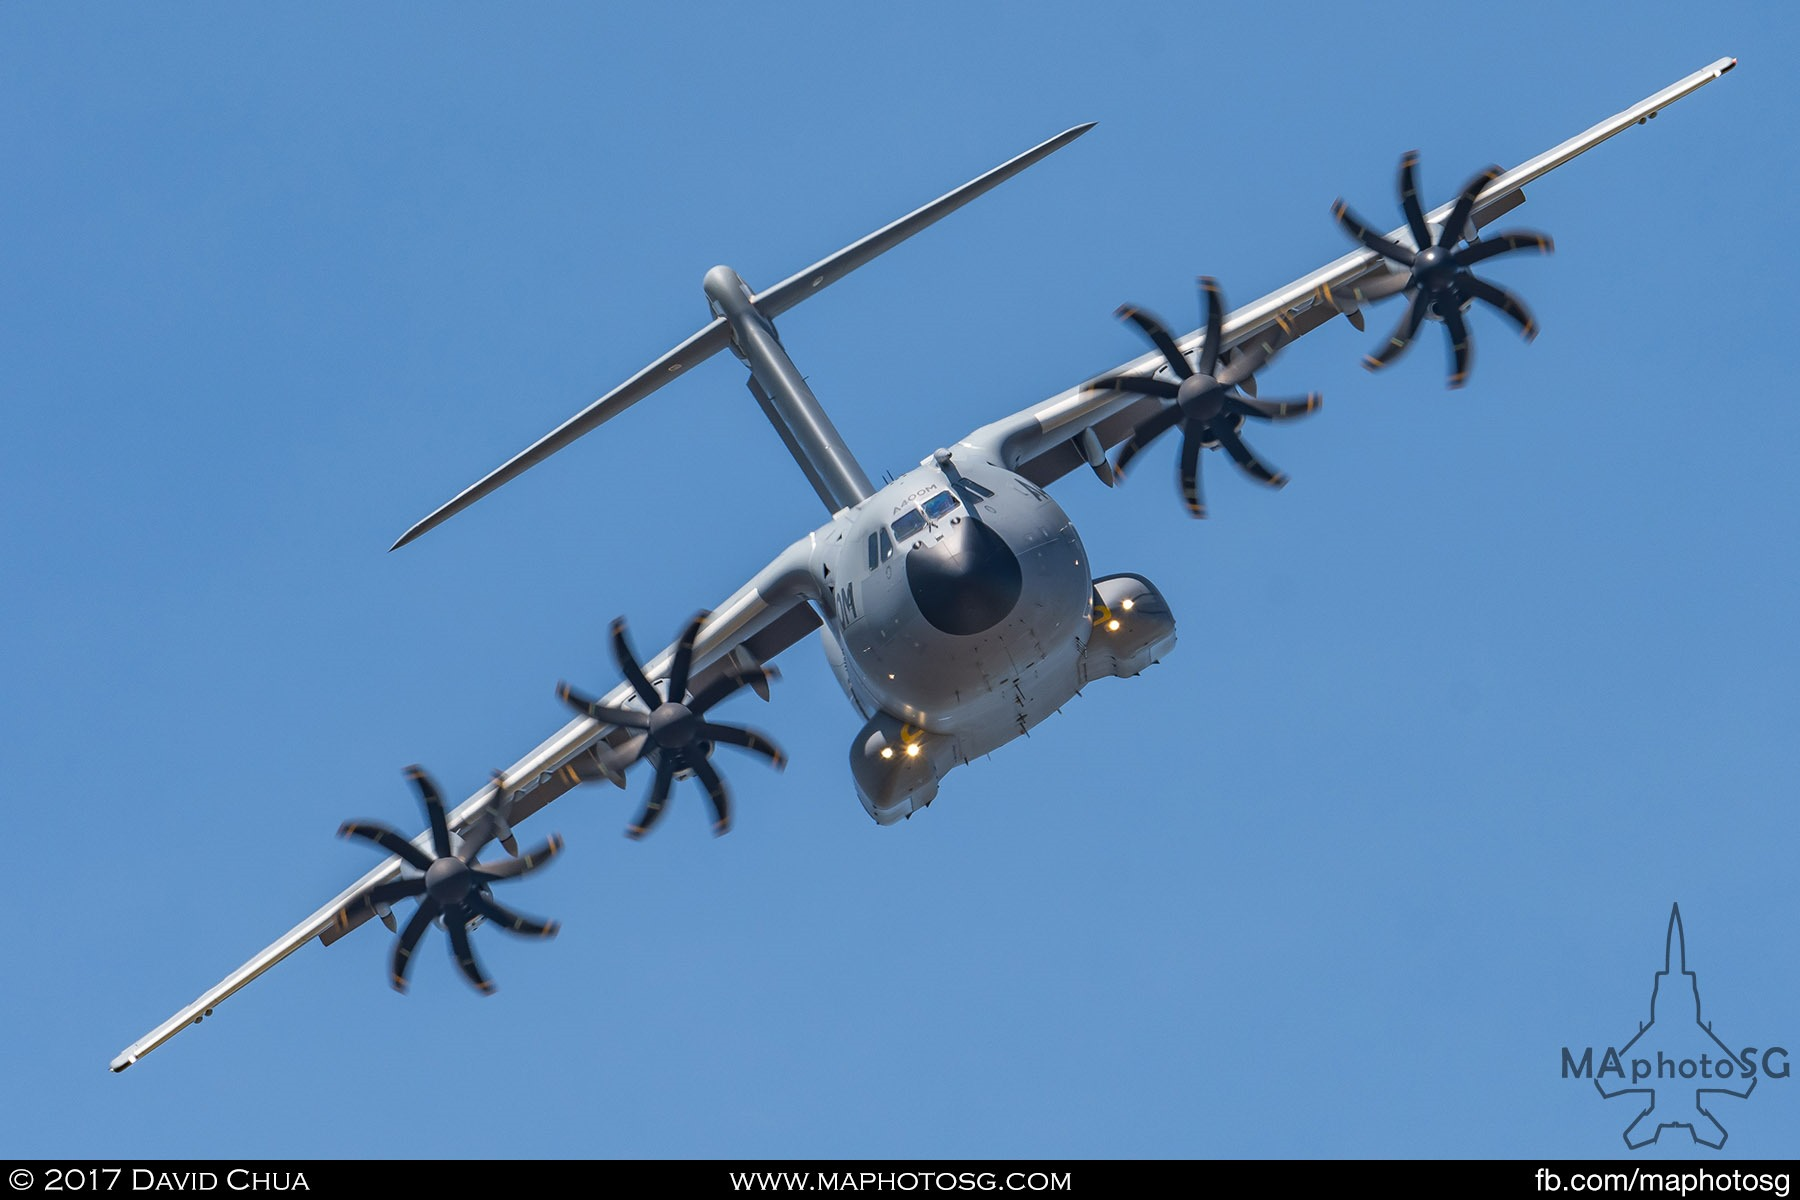 7. Airbus A400M Military Transport shows of it's capabilities in the aerial display segment.